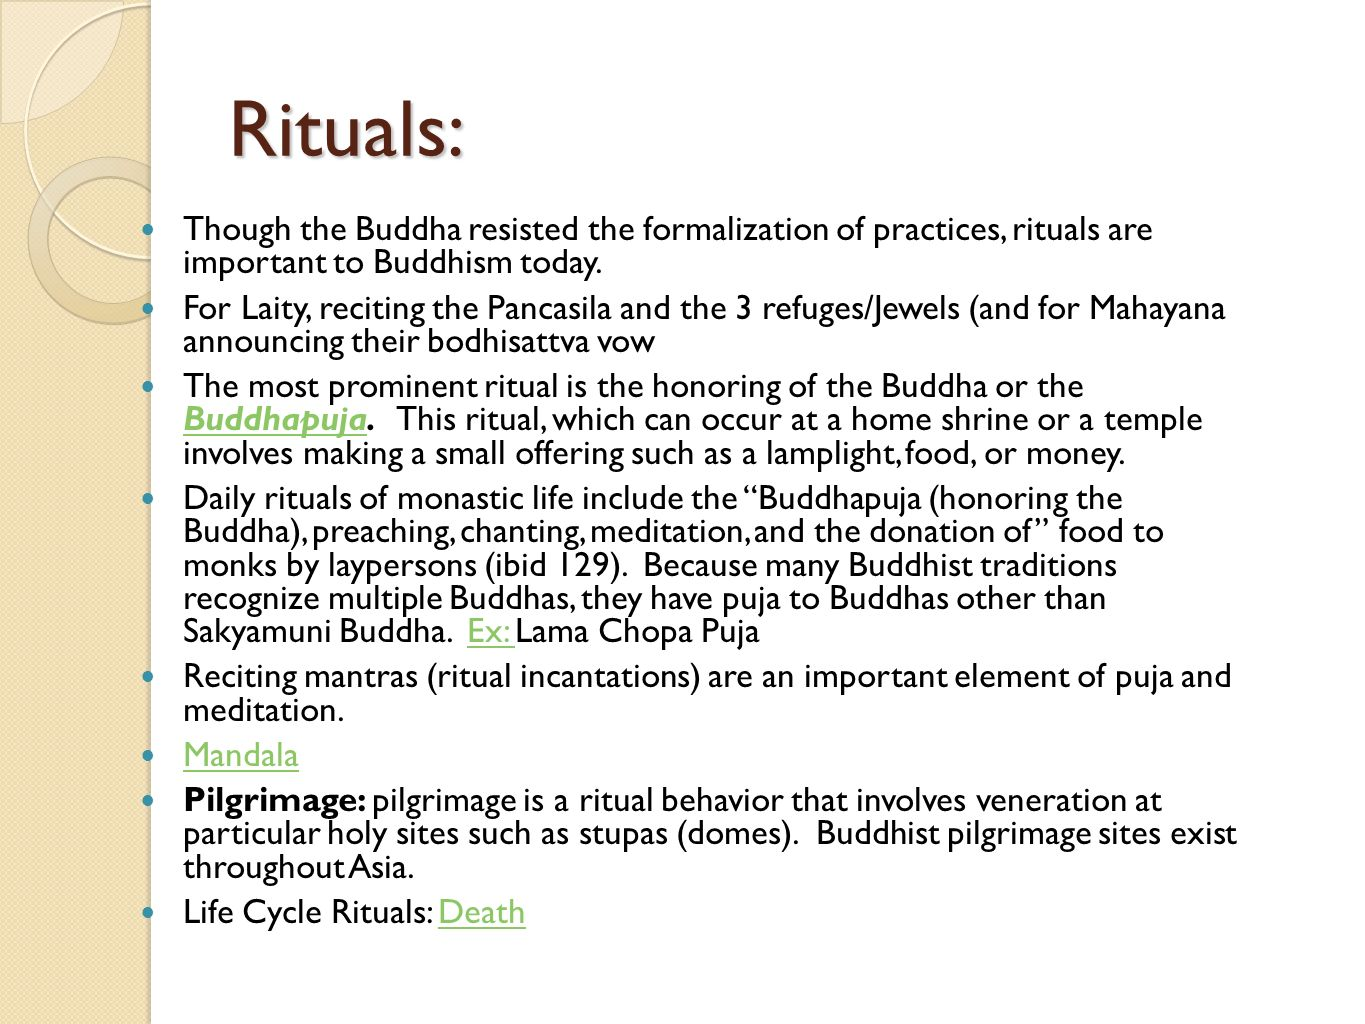 Rituals: Though the Buddha resisted the formalization of practices, rituals are important to Buddhism today.